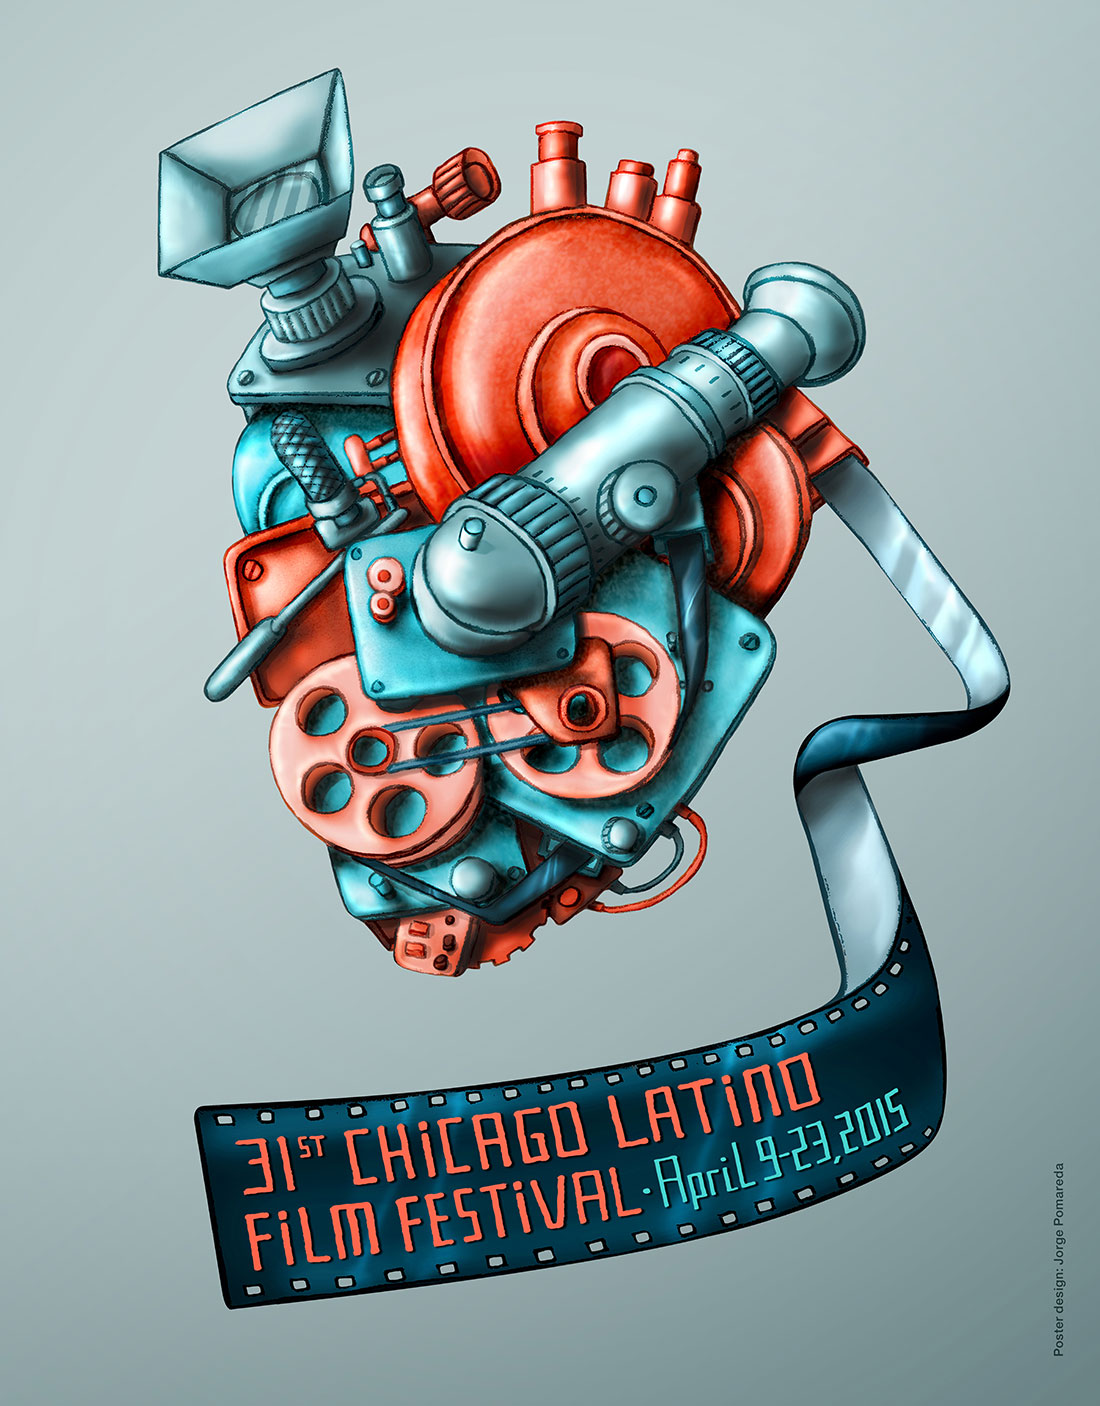 31st Chicago Latino Film Festival Poster